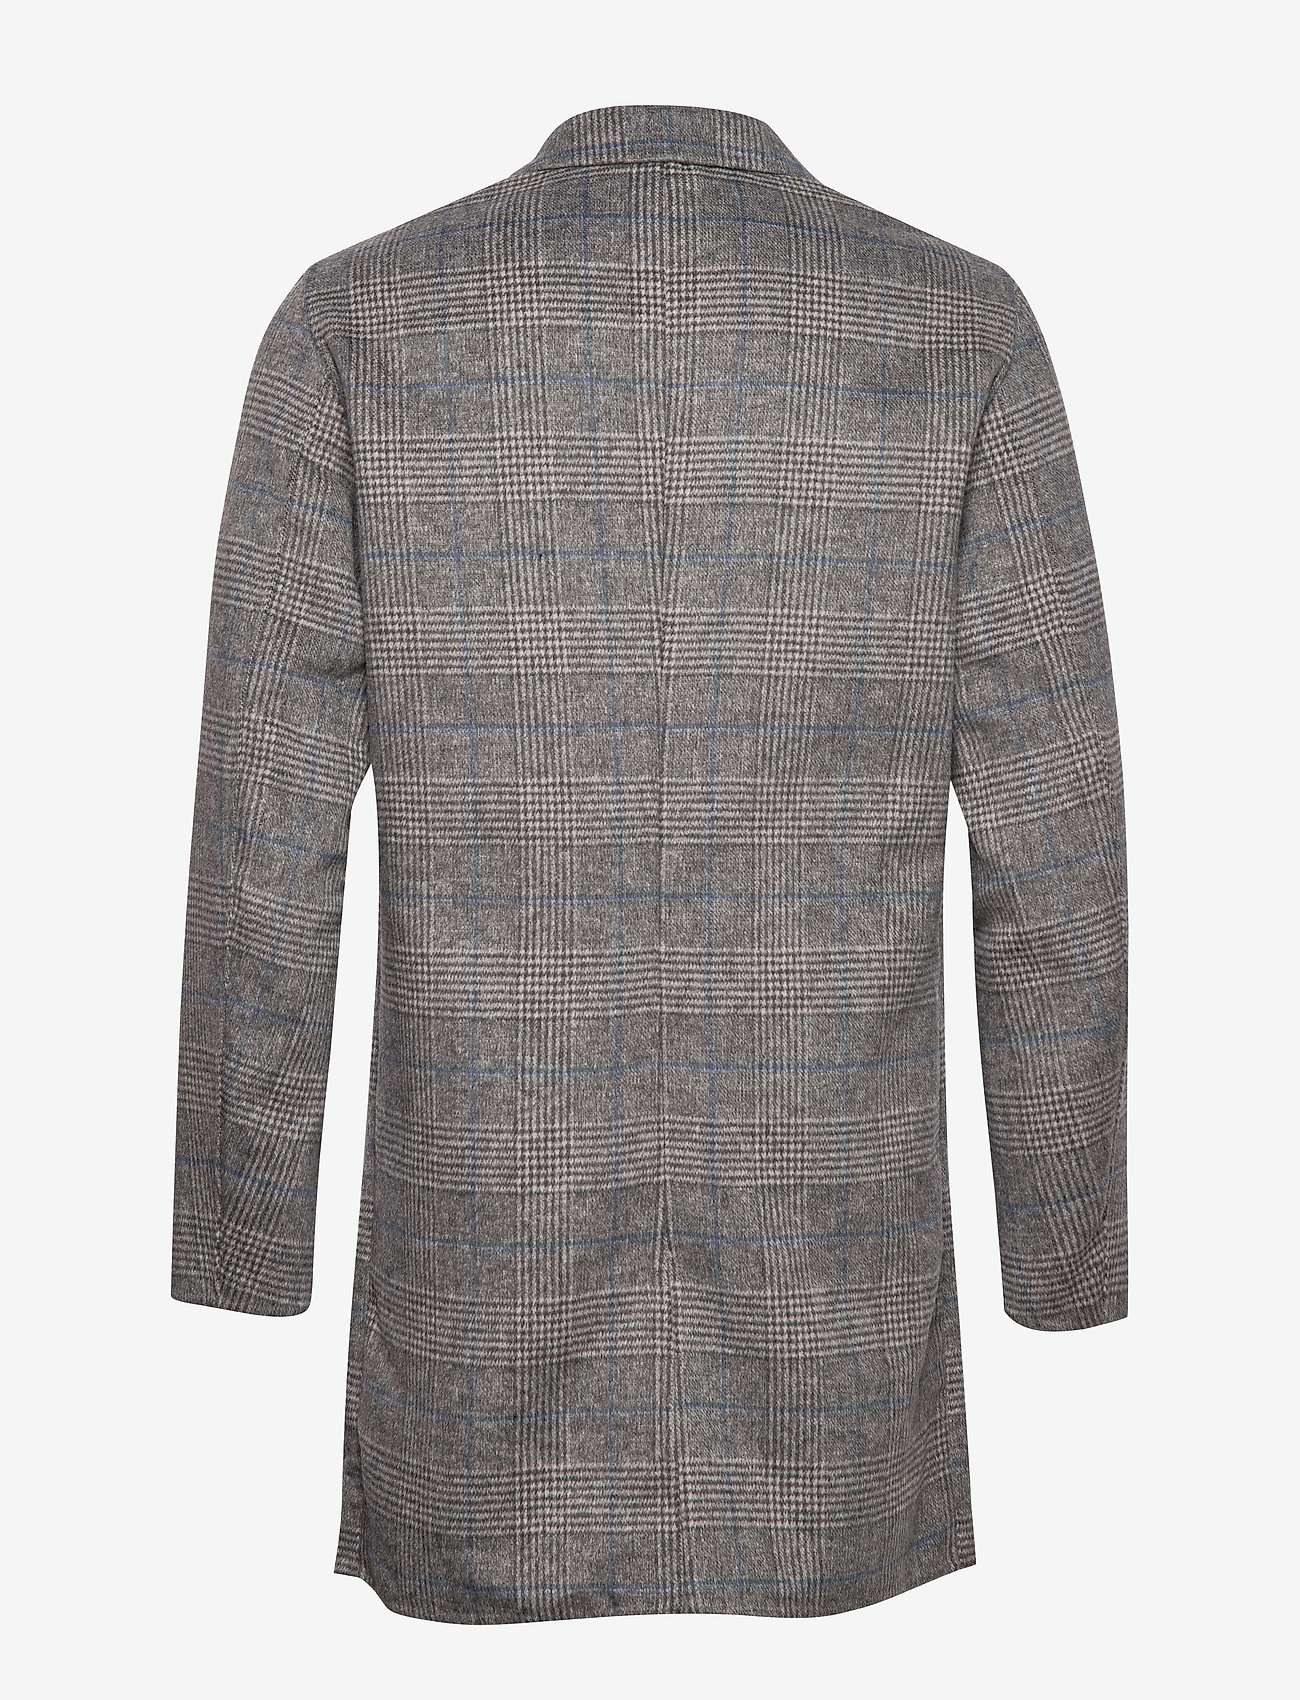 Jprflow Light Wool Jacket Bla (Grey Melange) - Jack & Jones A1dlzg